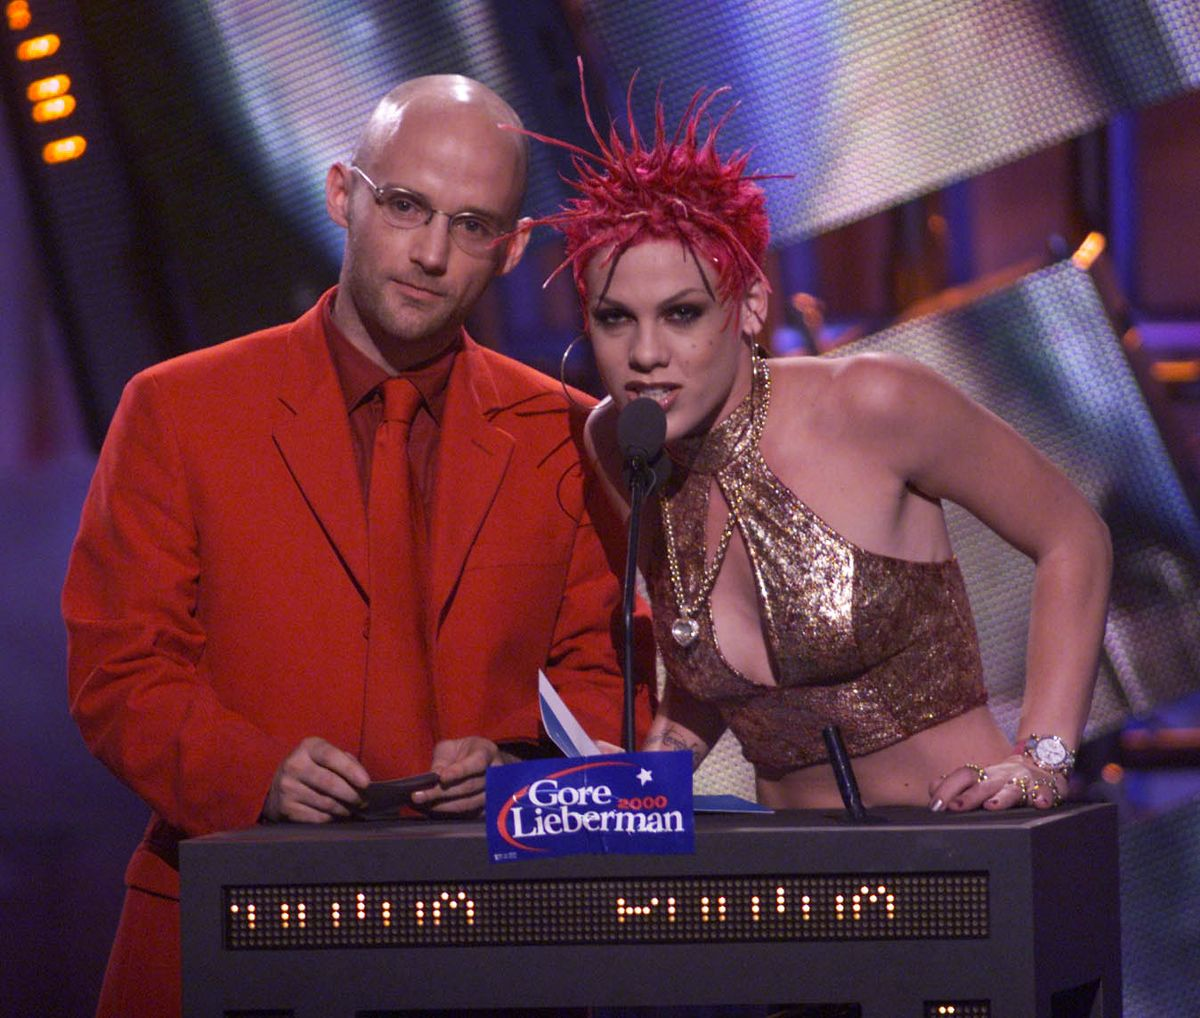 Moby and Pink at the 2000 MTV Video Music Awards. Photo by Dave Hogan/Getty Images